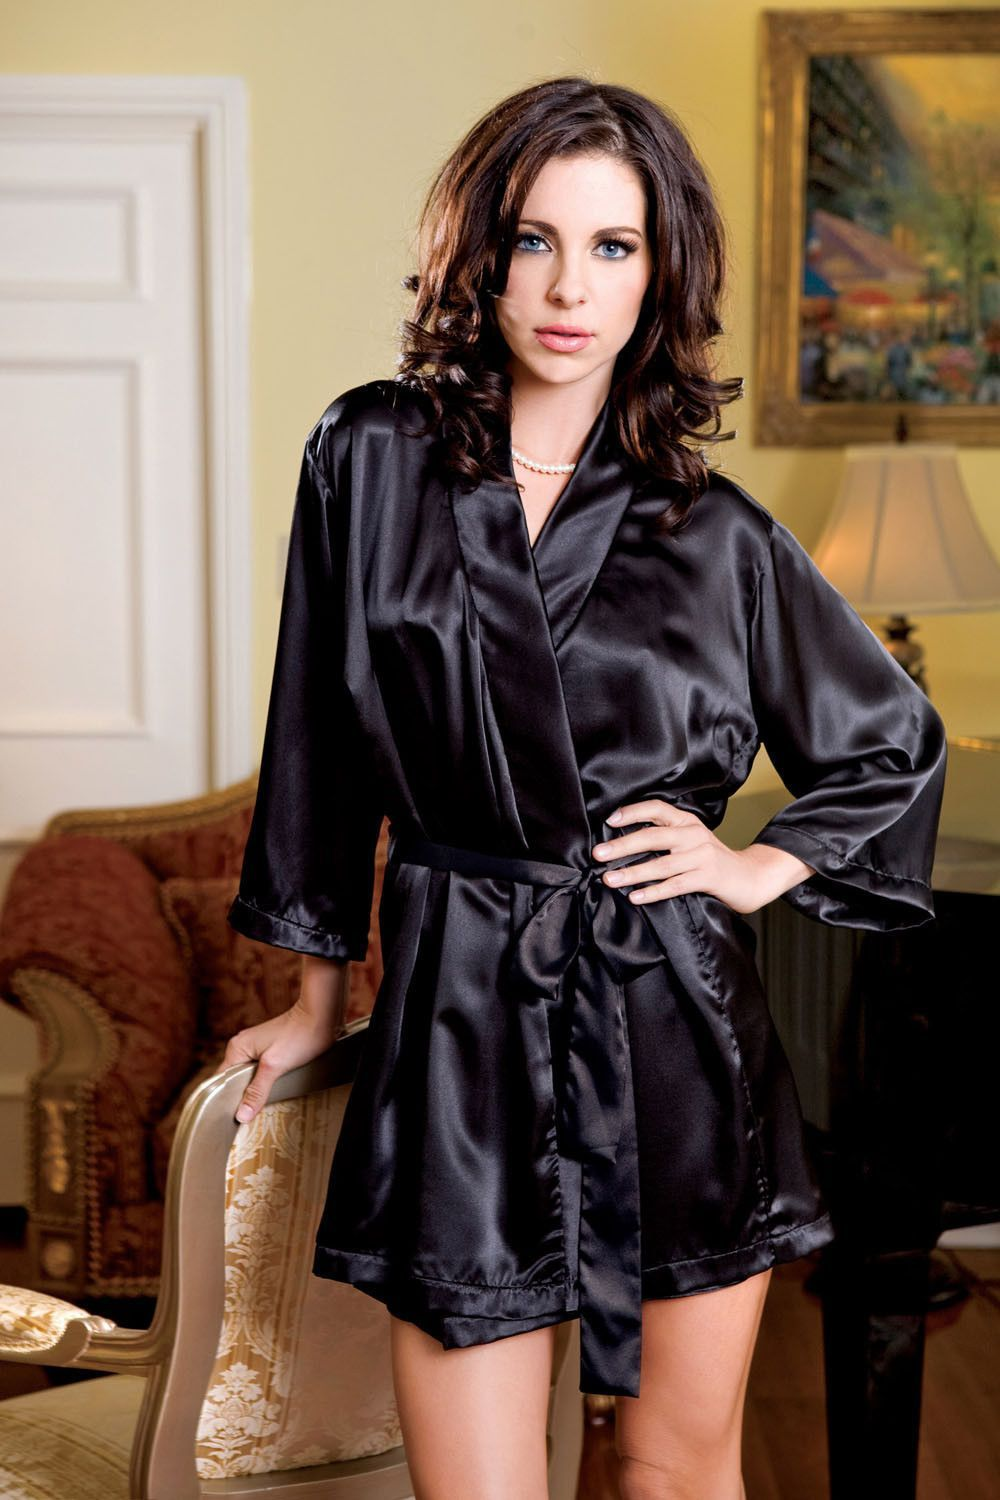 cb370a6f41d Details about iCollection Satin 3 4 Sleeve Robe with Matching Sash ...